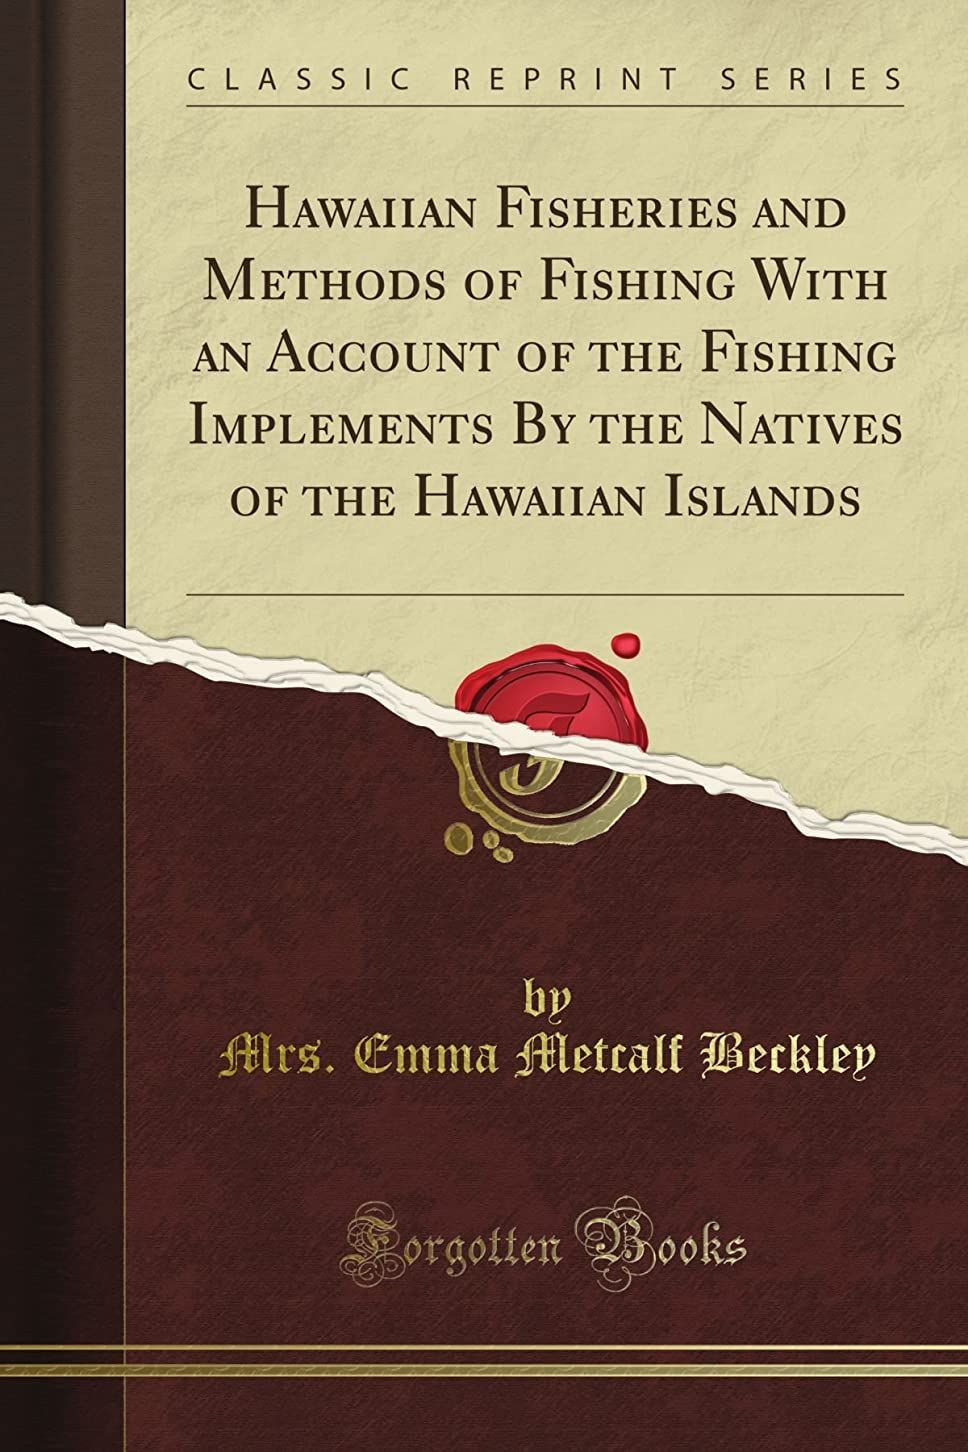 Hawaiian Fisheries and Methods of Fishing With an Account of the Fishing Implements By the Natives of the Hawaiian Islands (Classic Reprint)